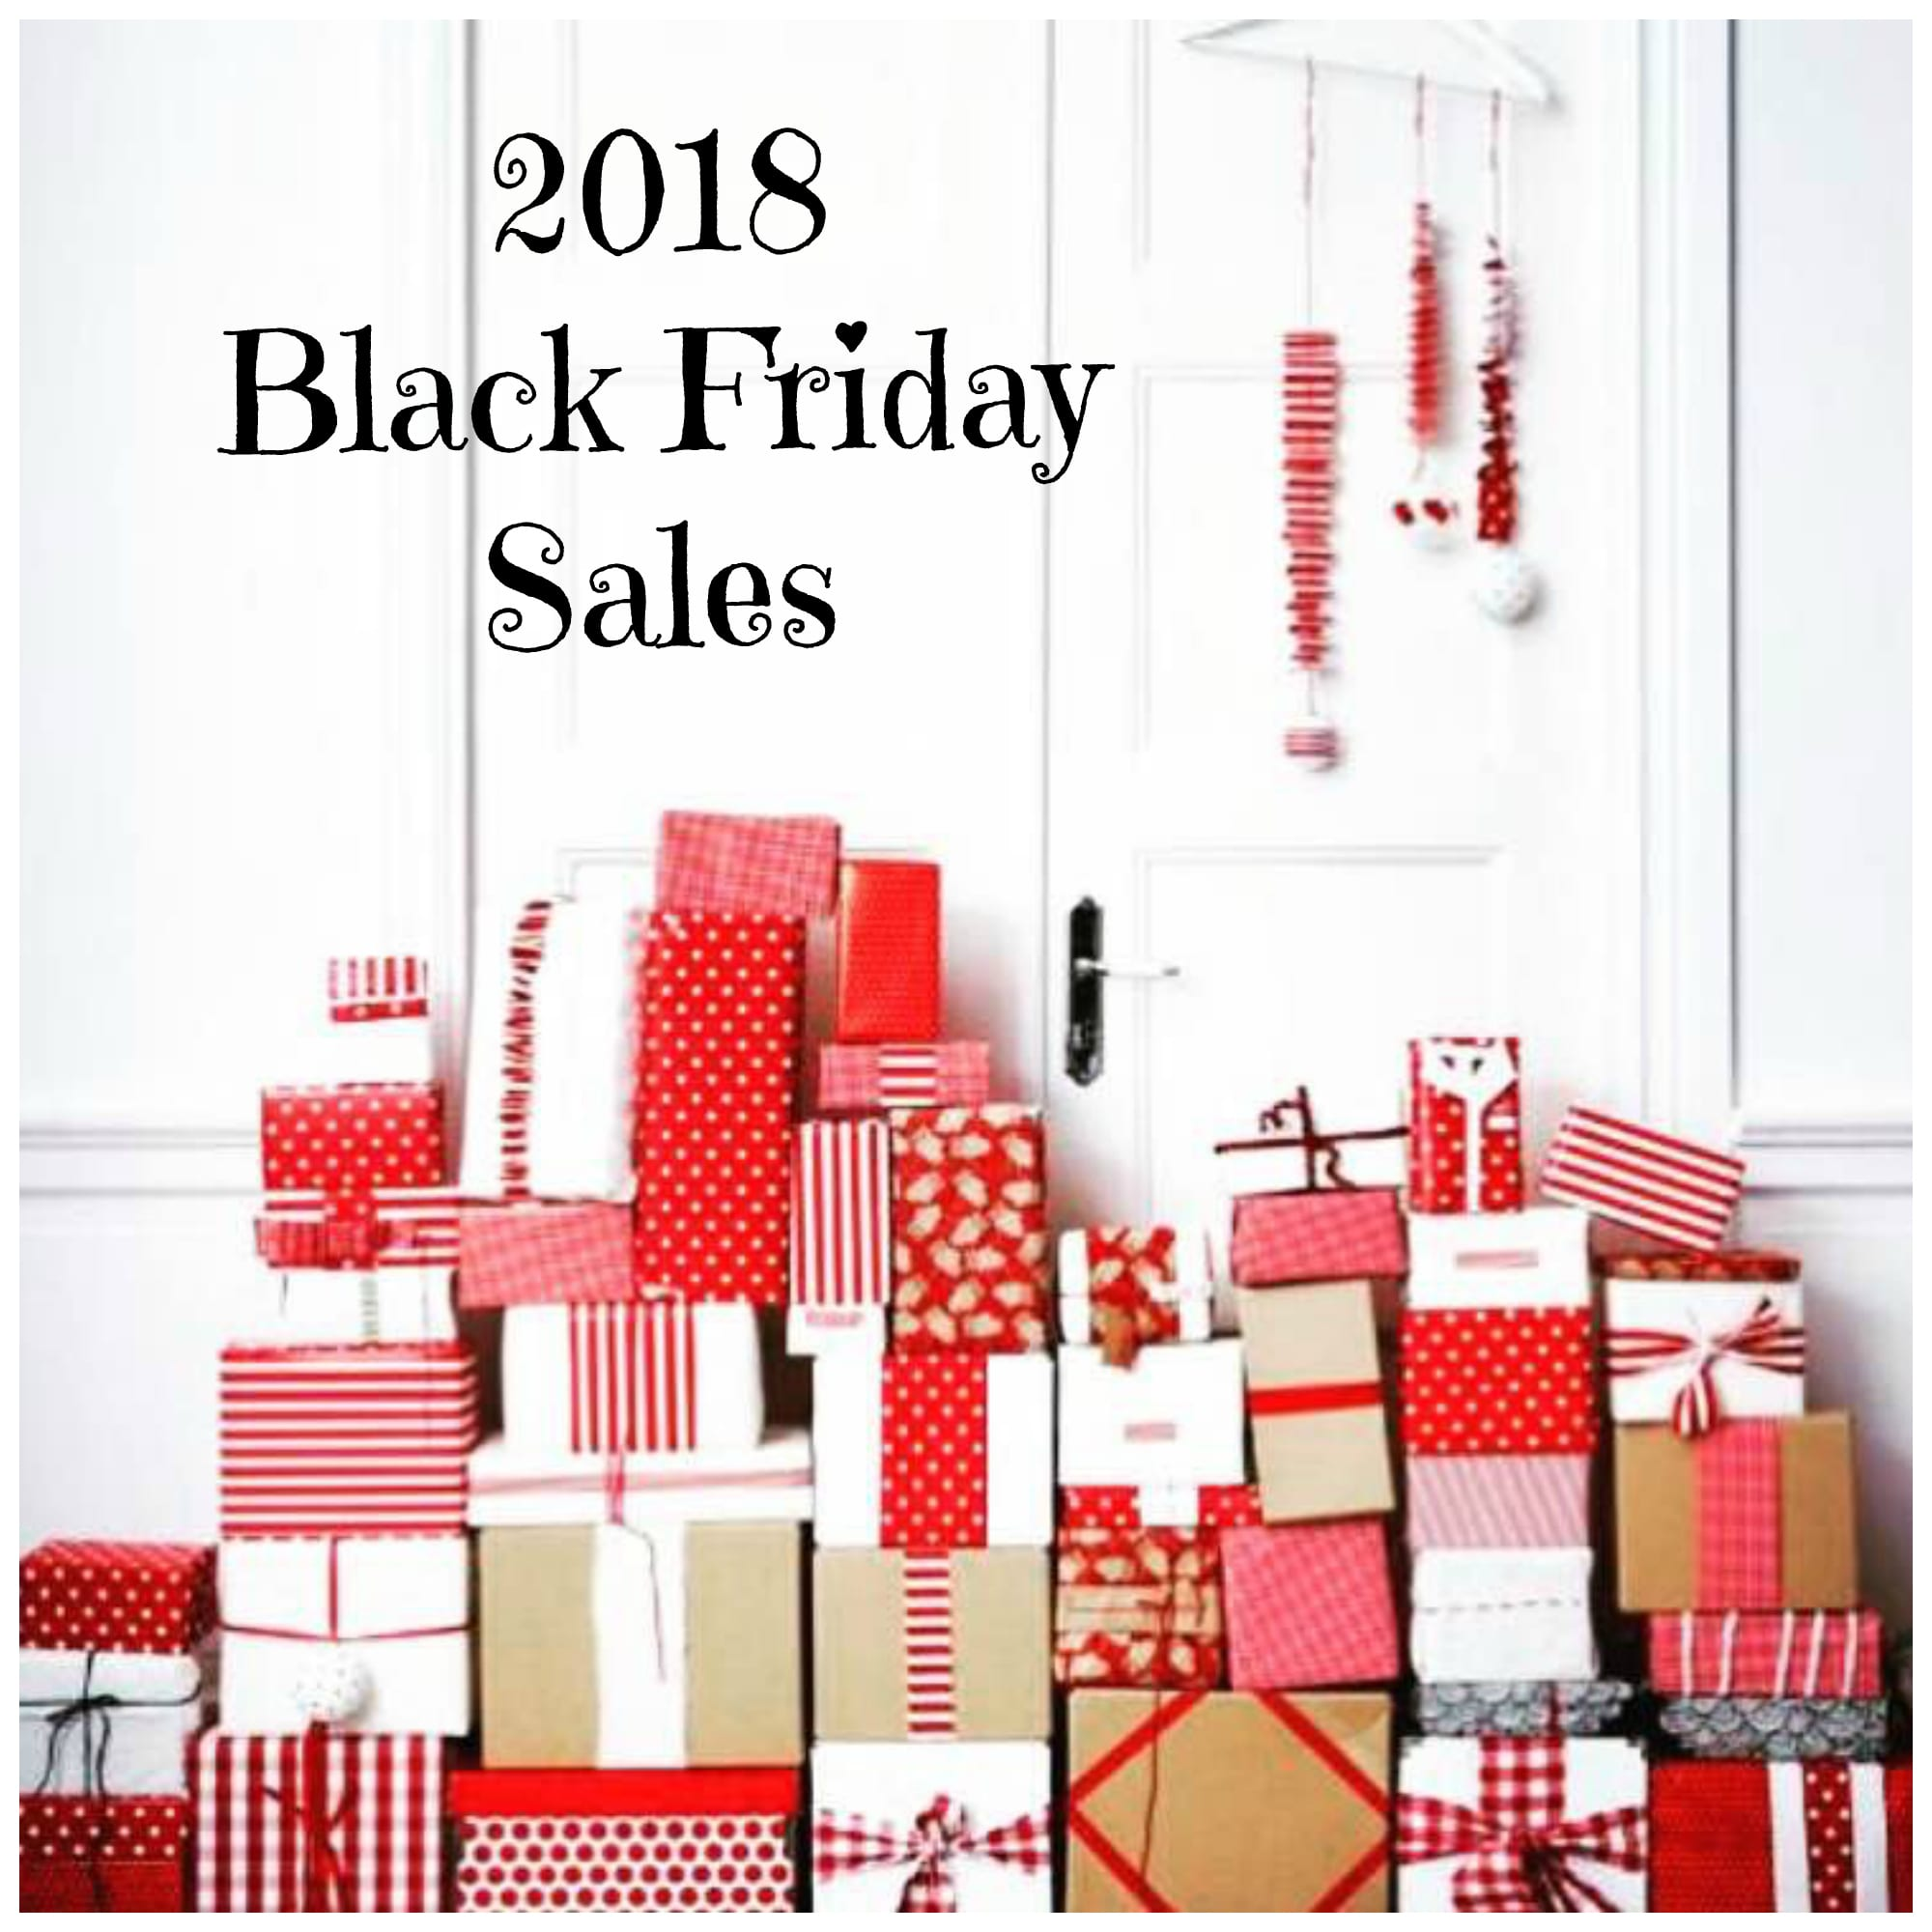 sales, Black Friday Sales, deals, door busters